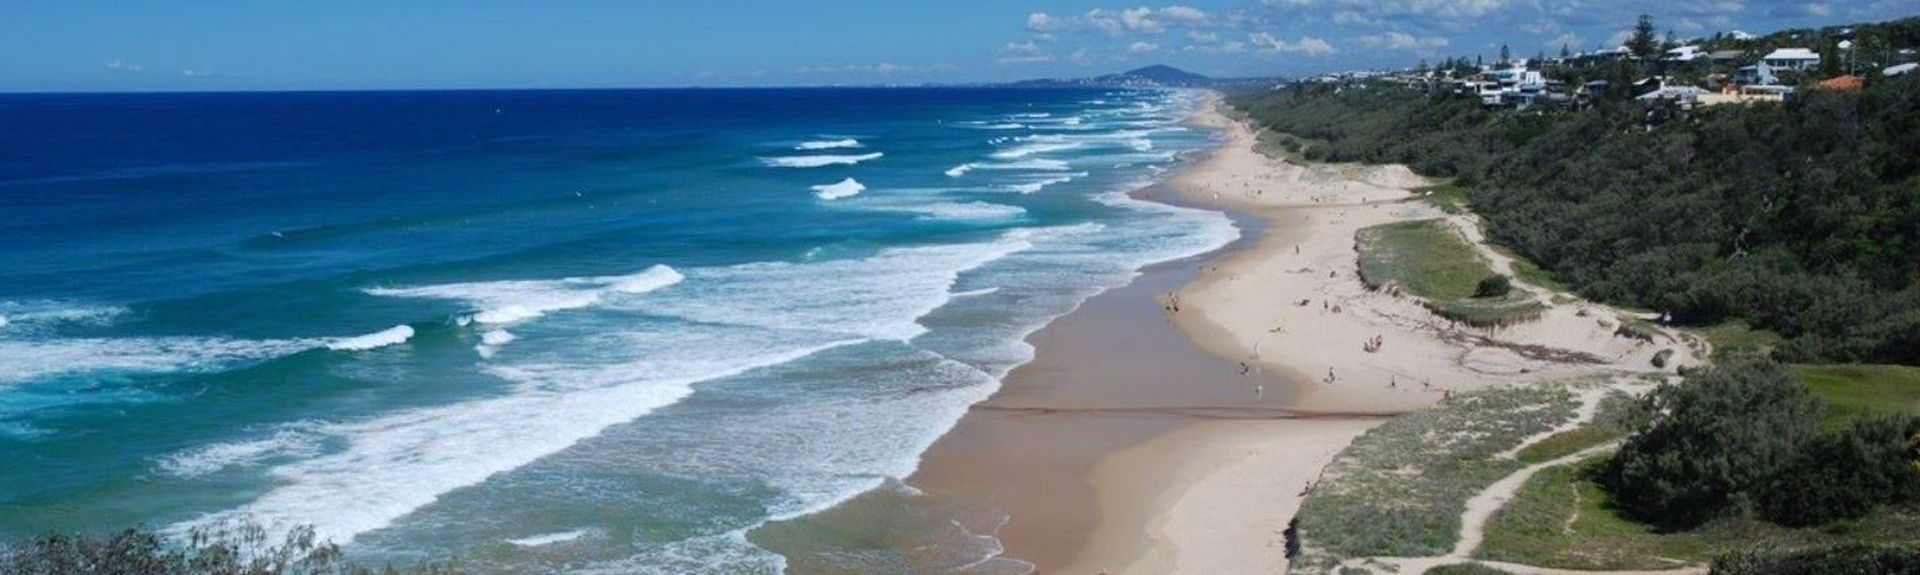 Noosa National Park, Sunshine Coast, Queensland, Australien